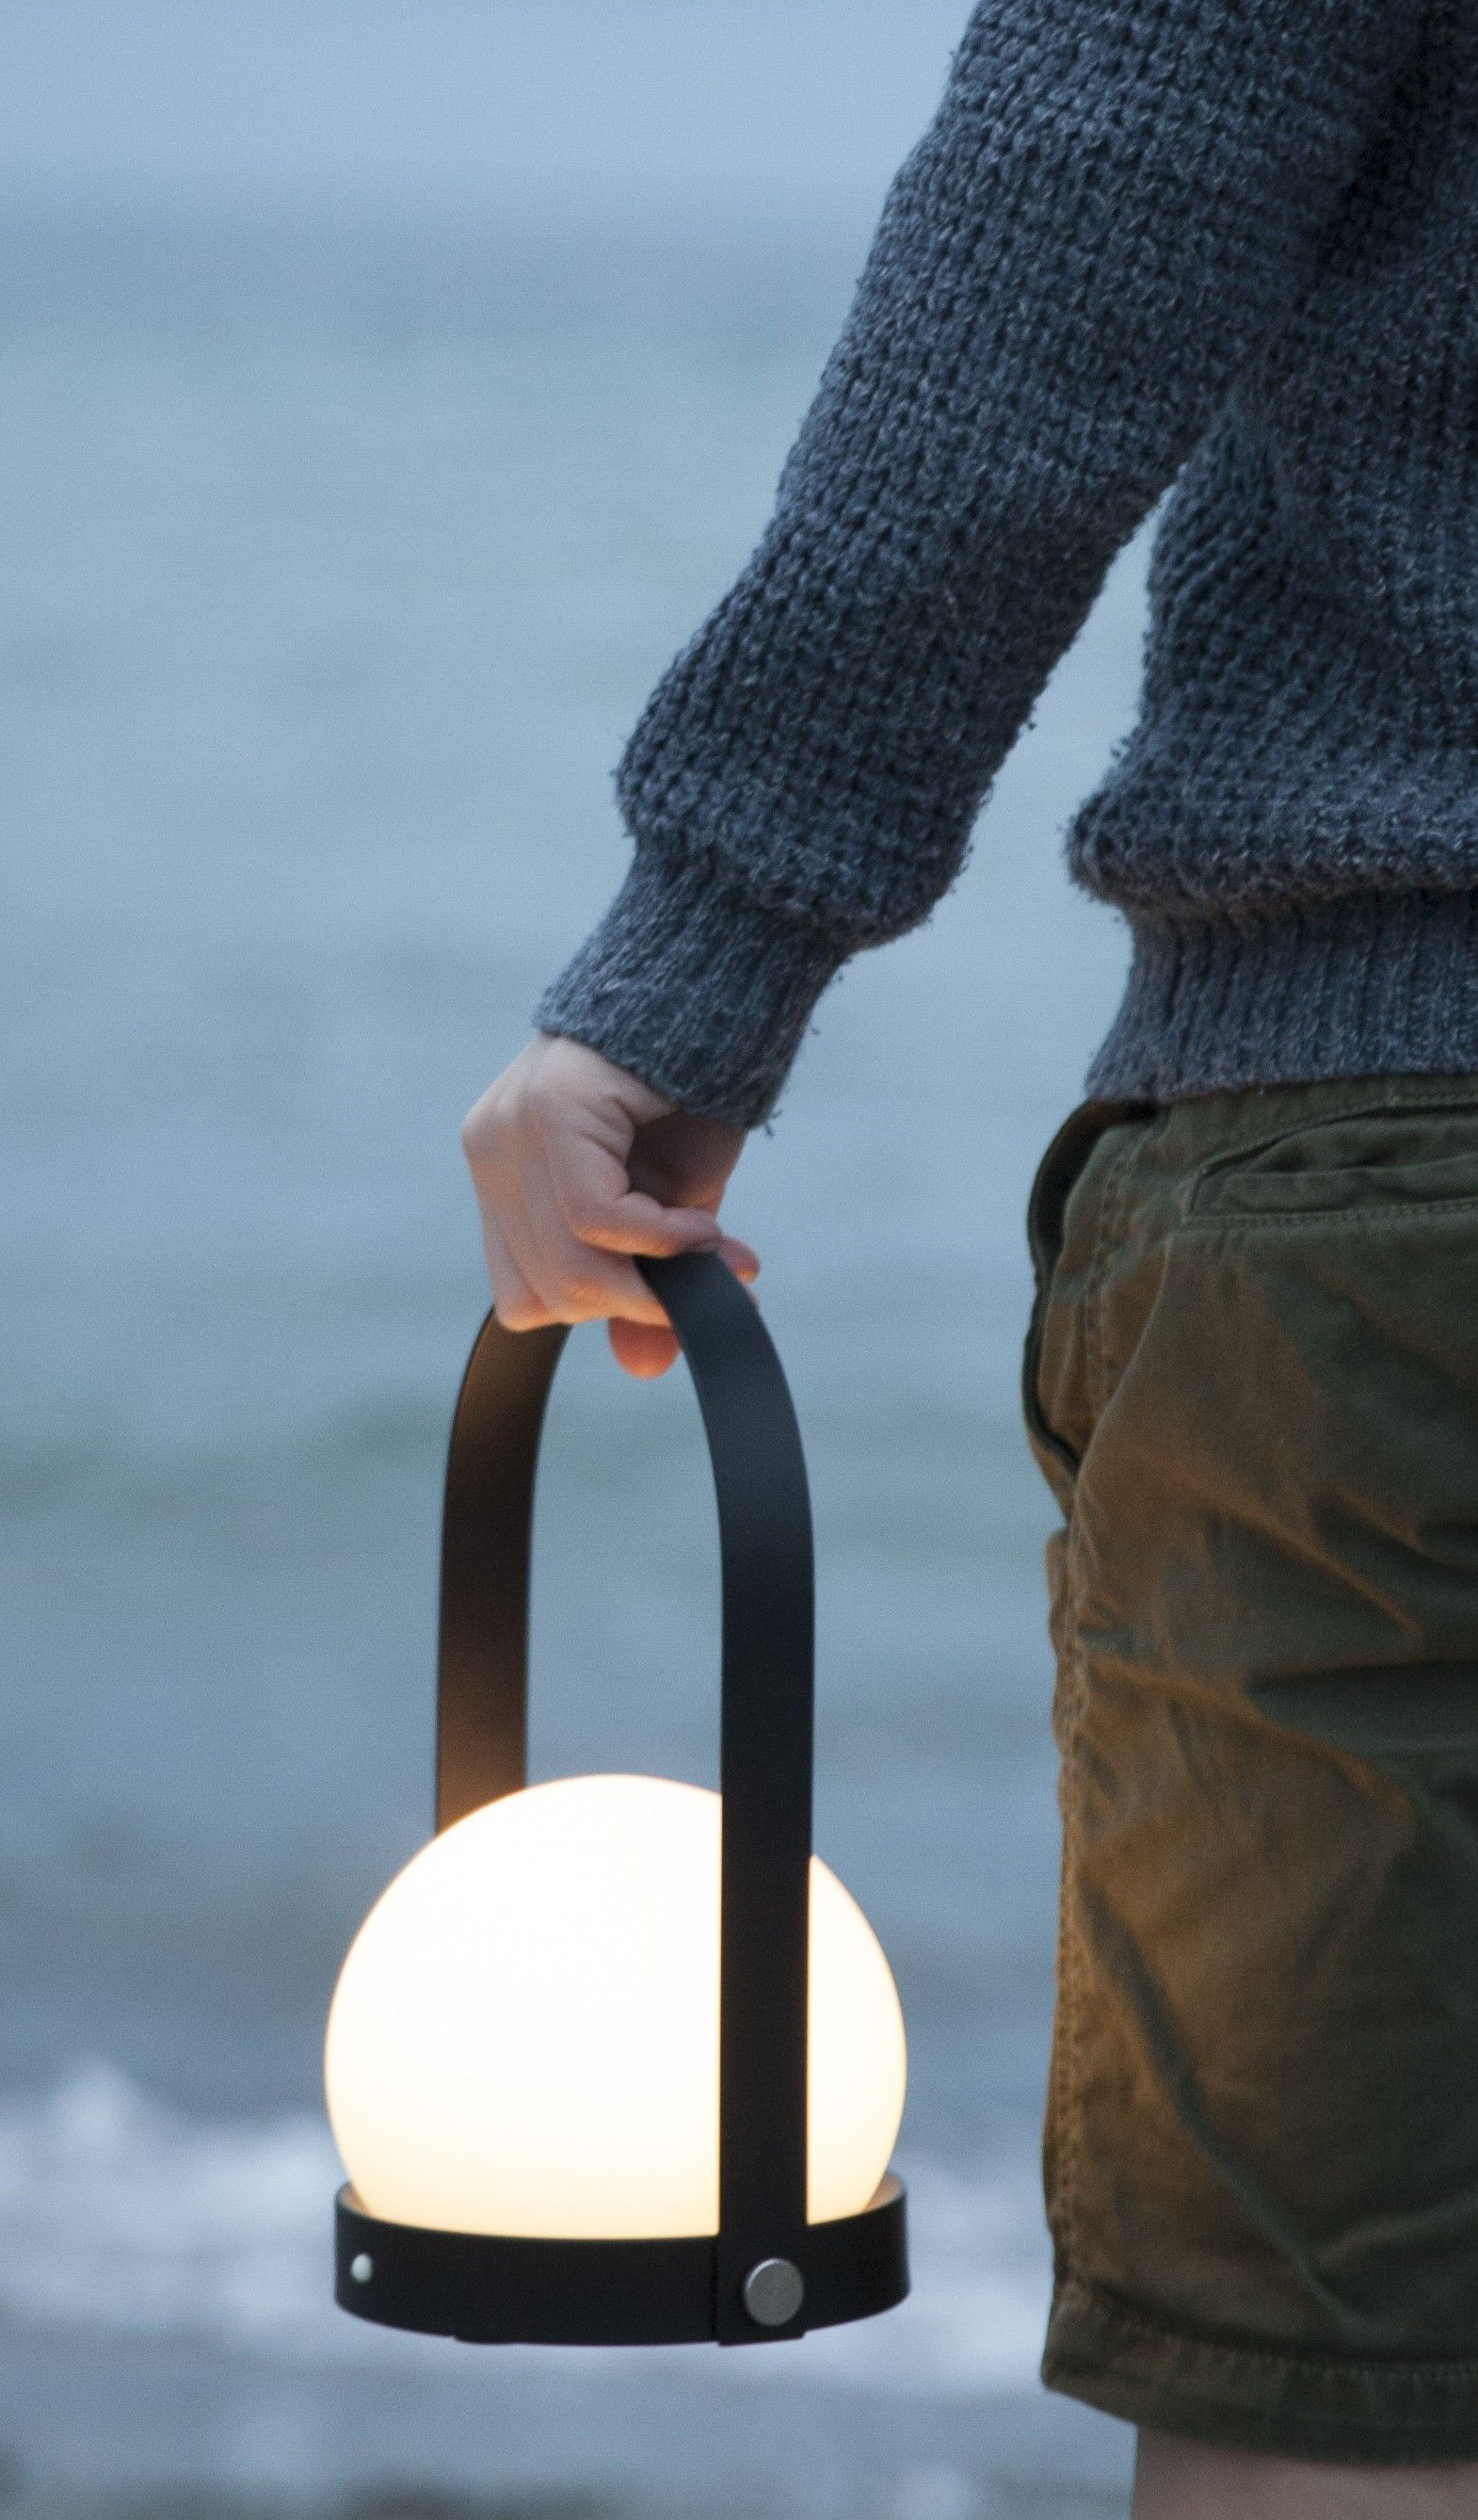 Carrie Portable Table Lamp By Menu 4863539 In 2020 Portable Led Lamp Norm Architects Portable Led